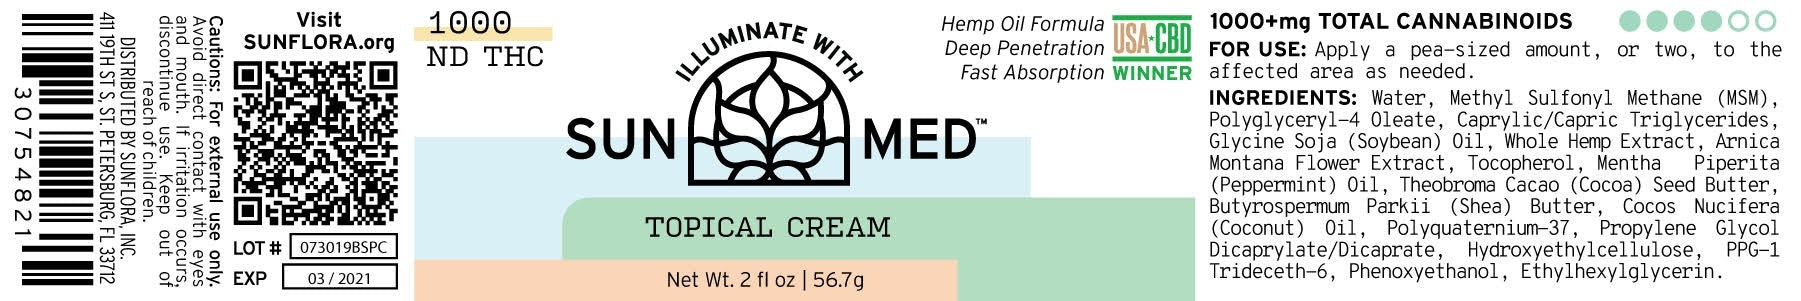 Broad Spectrum Topical Cream | 1000mg (2oz)